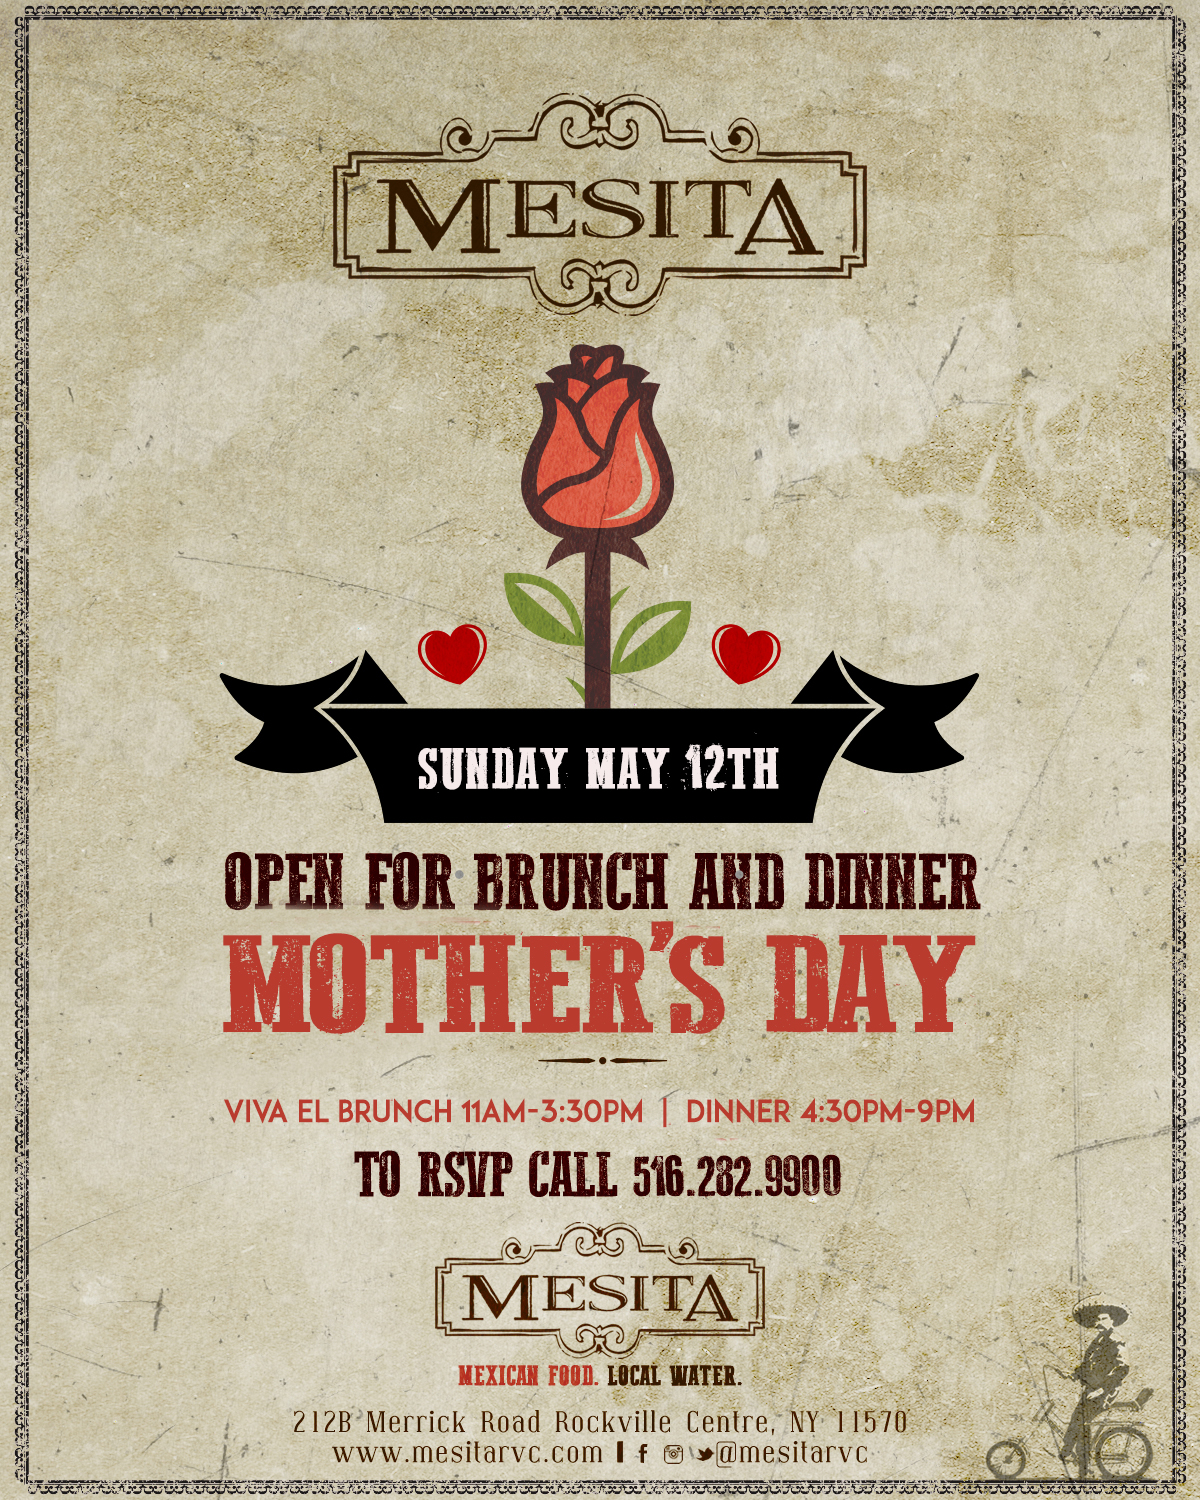 Mother's Day at Mesita!